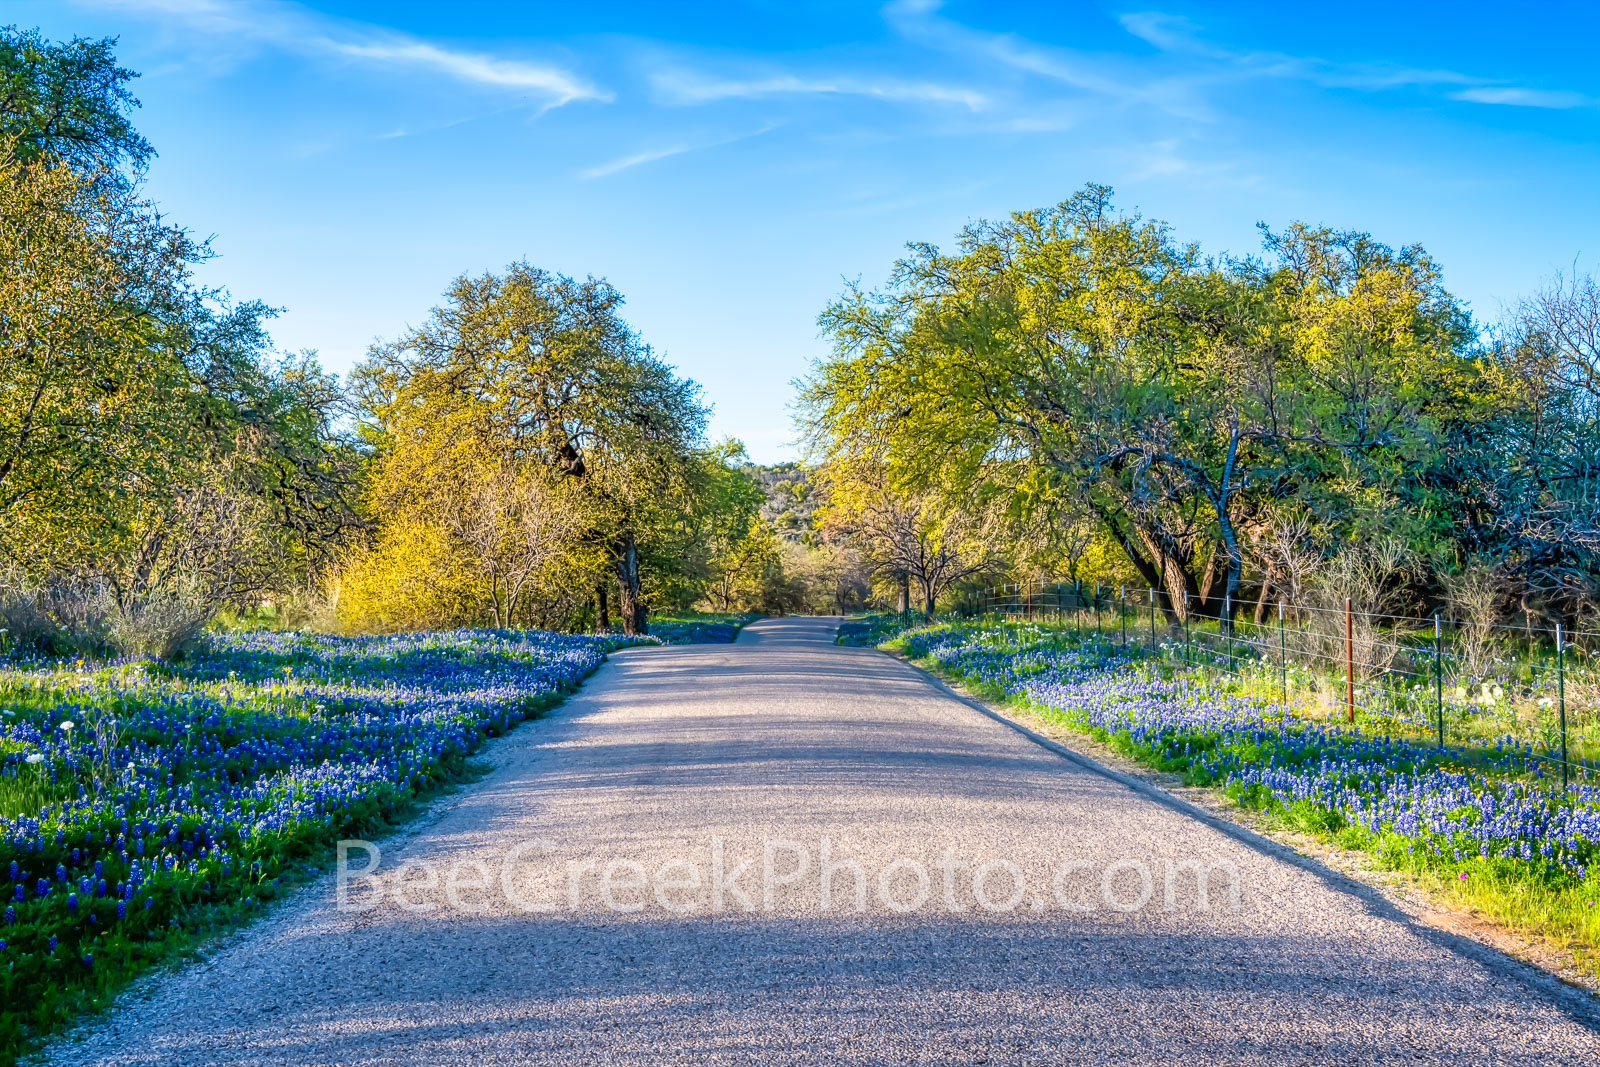 Bluebonnets Along Country Road - Bluebonnets line the road in this Texas hill country backroads with this natural wildflowers...